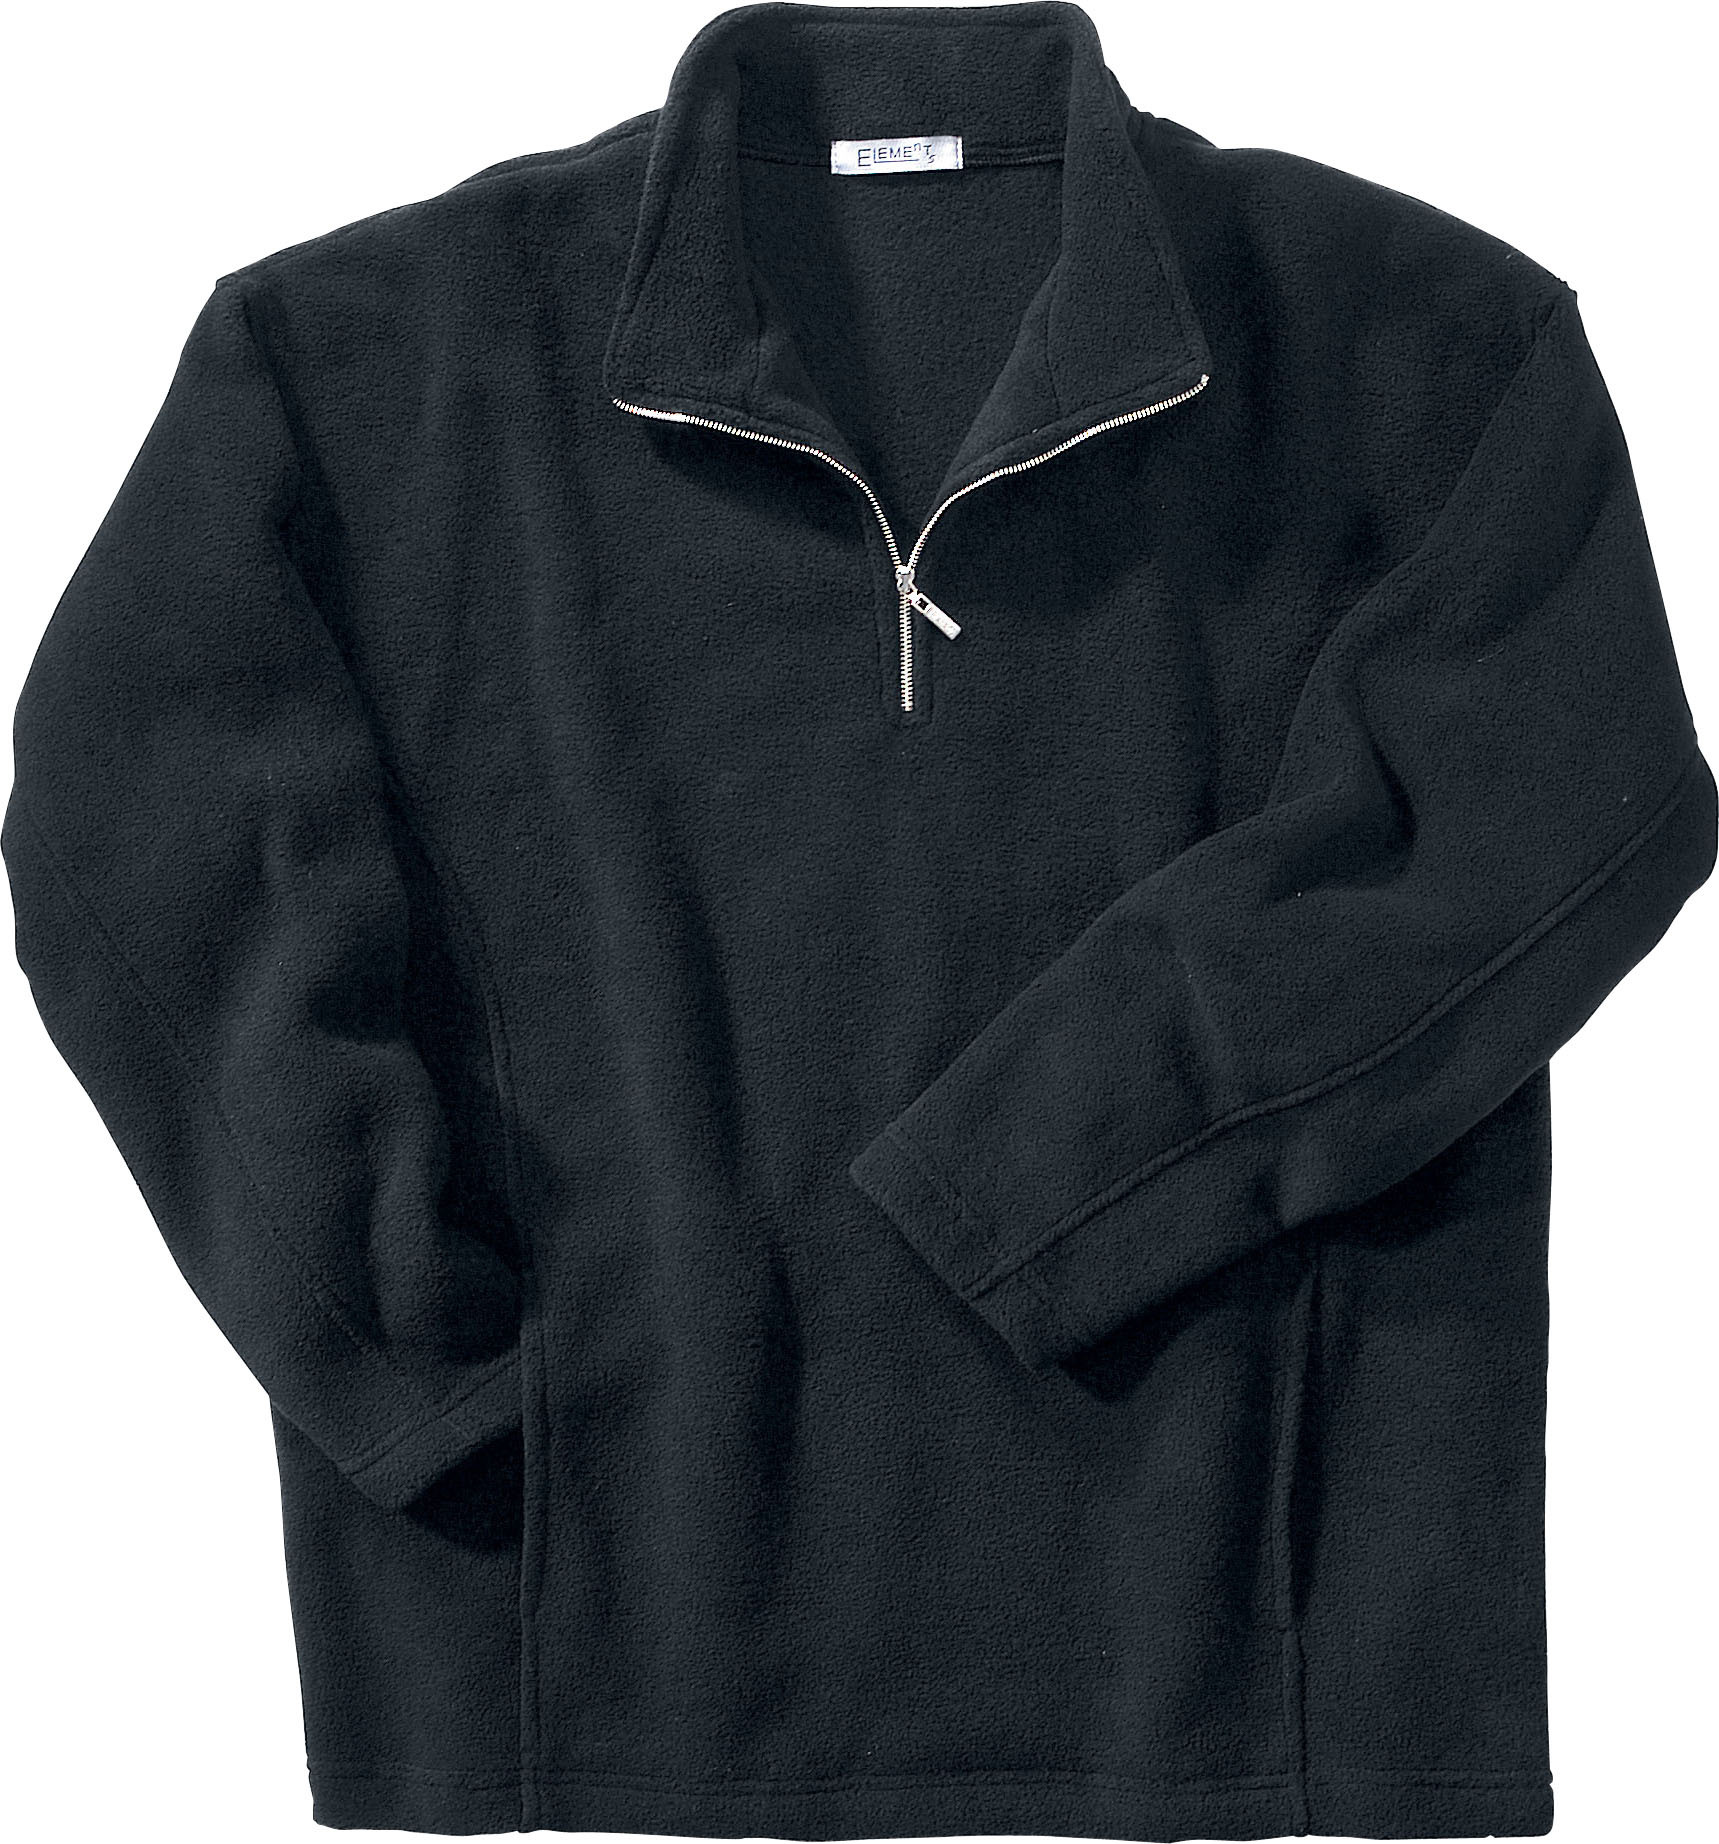 Ash City Poly Fleece 221434 - Men's Solid Polyester ...